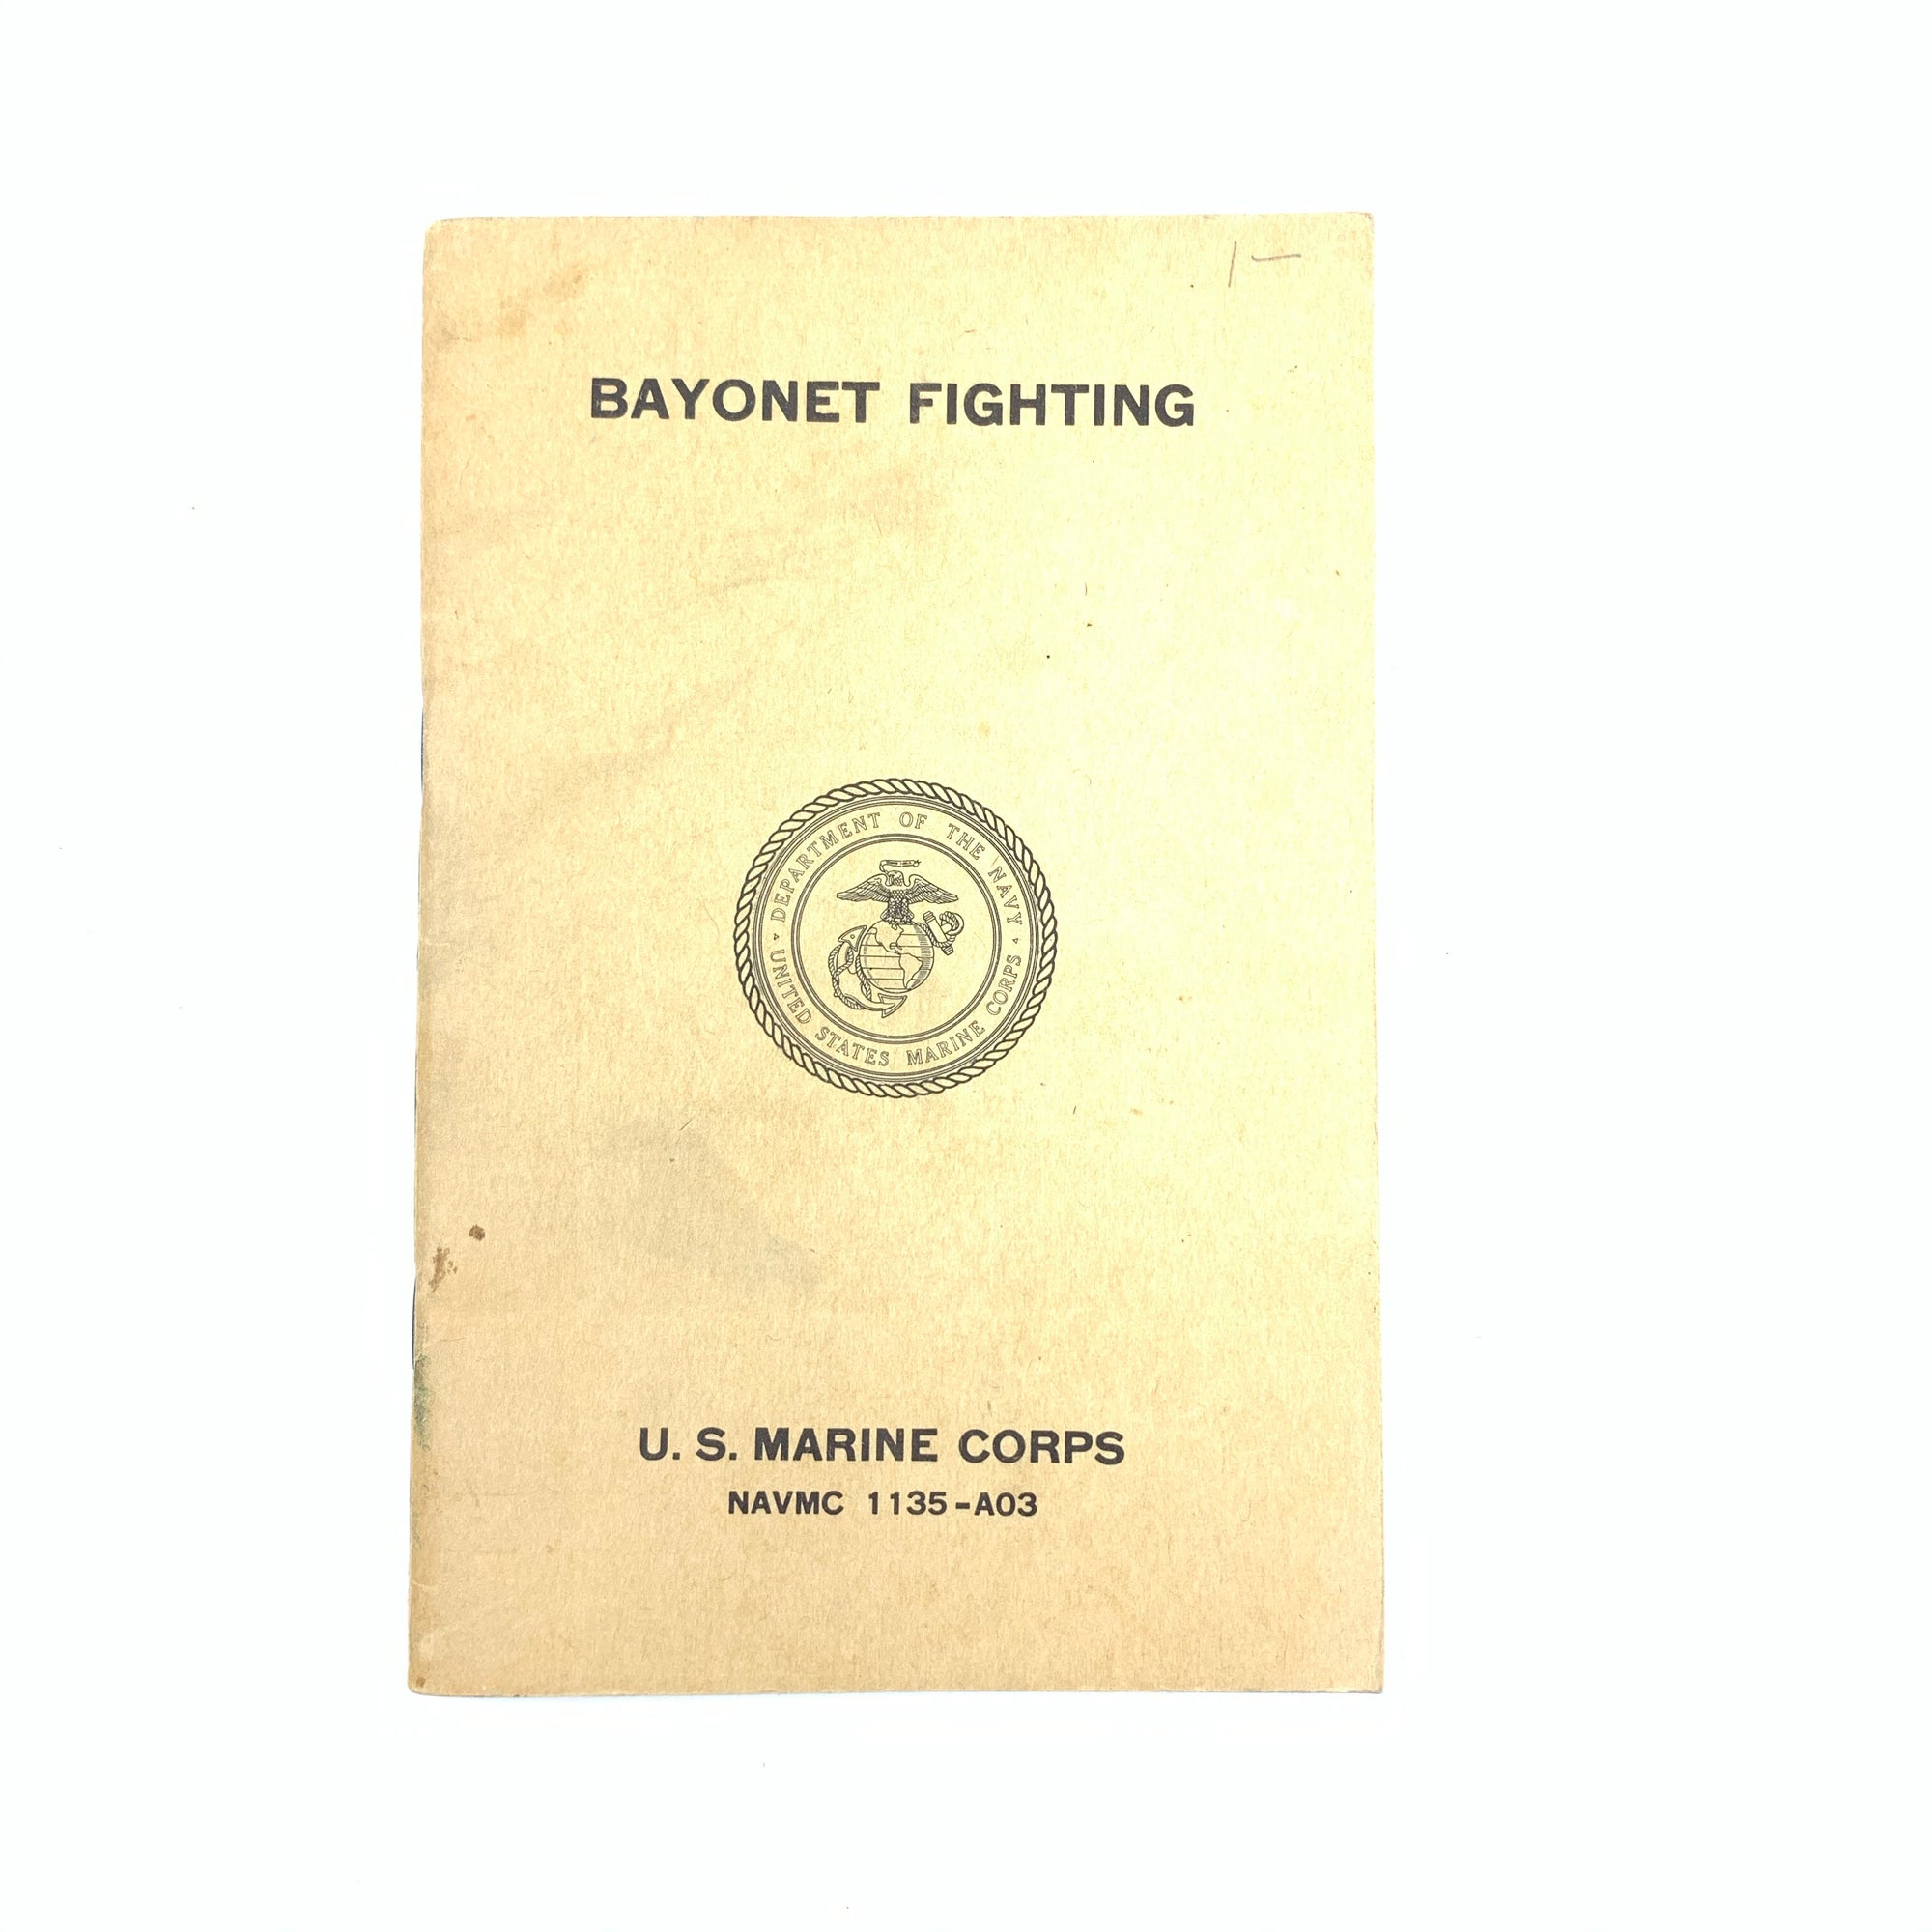 Bayonet Fighting US Marine Corps 1957 Small SB Book 41 pgs